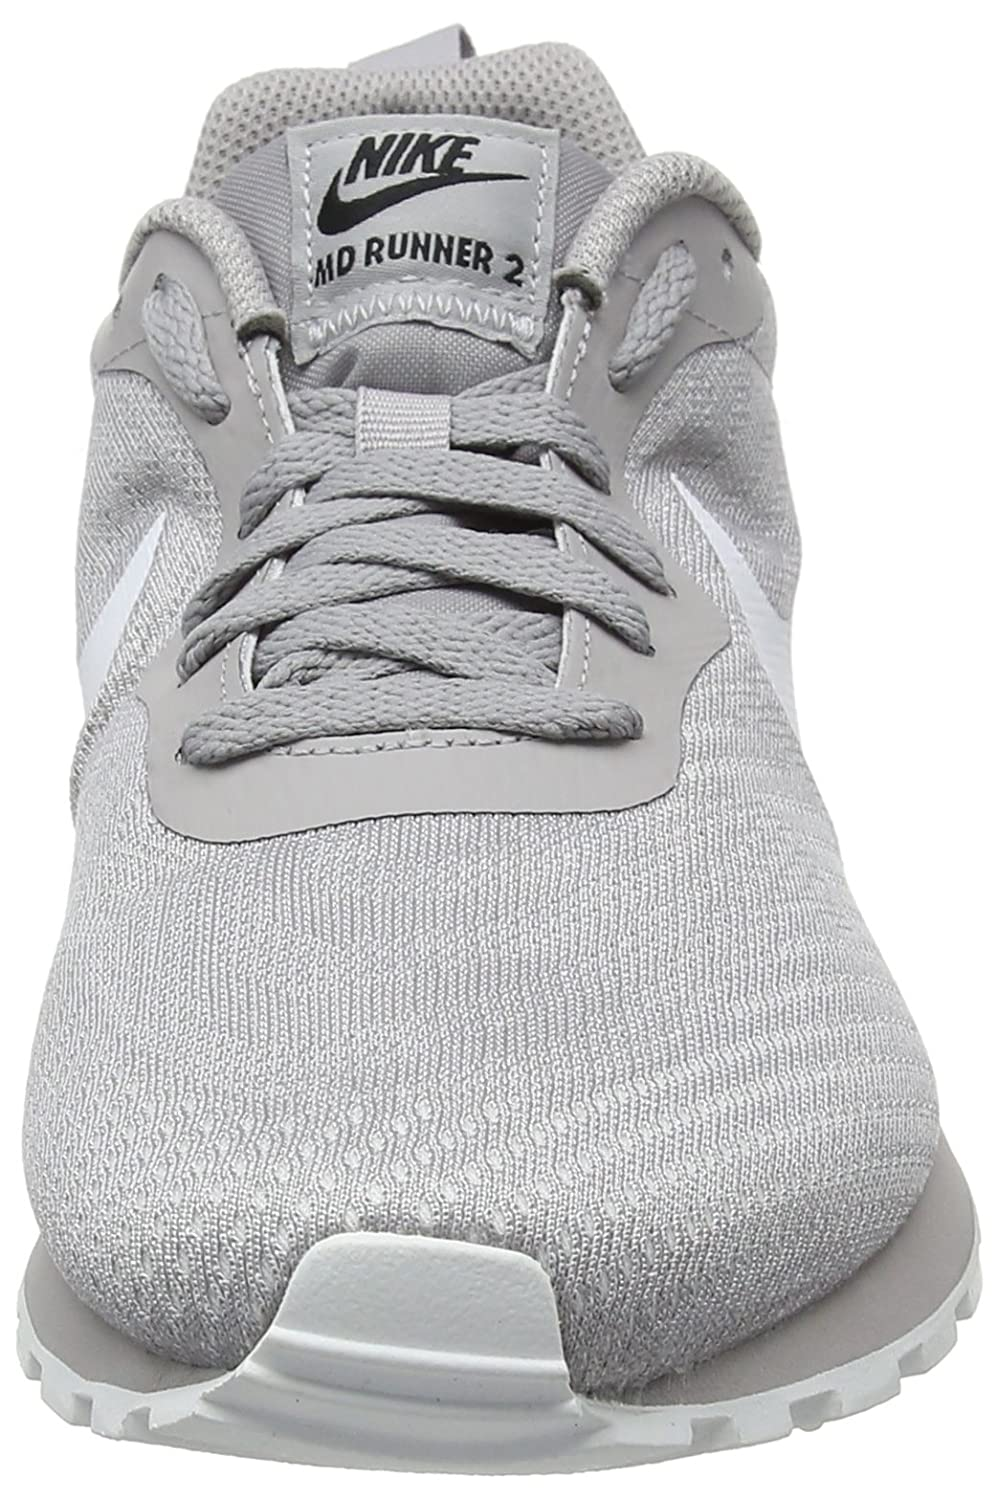 sports shoes 91875 cbc5f Nike Men s Md Runner 2 Eng Mesh Competition Running Shoes Beige   Amazon.co.uk  Shoes   Bags